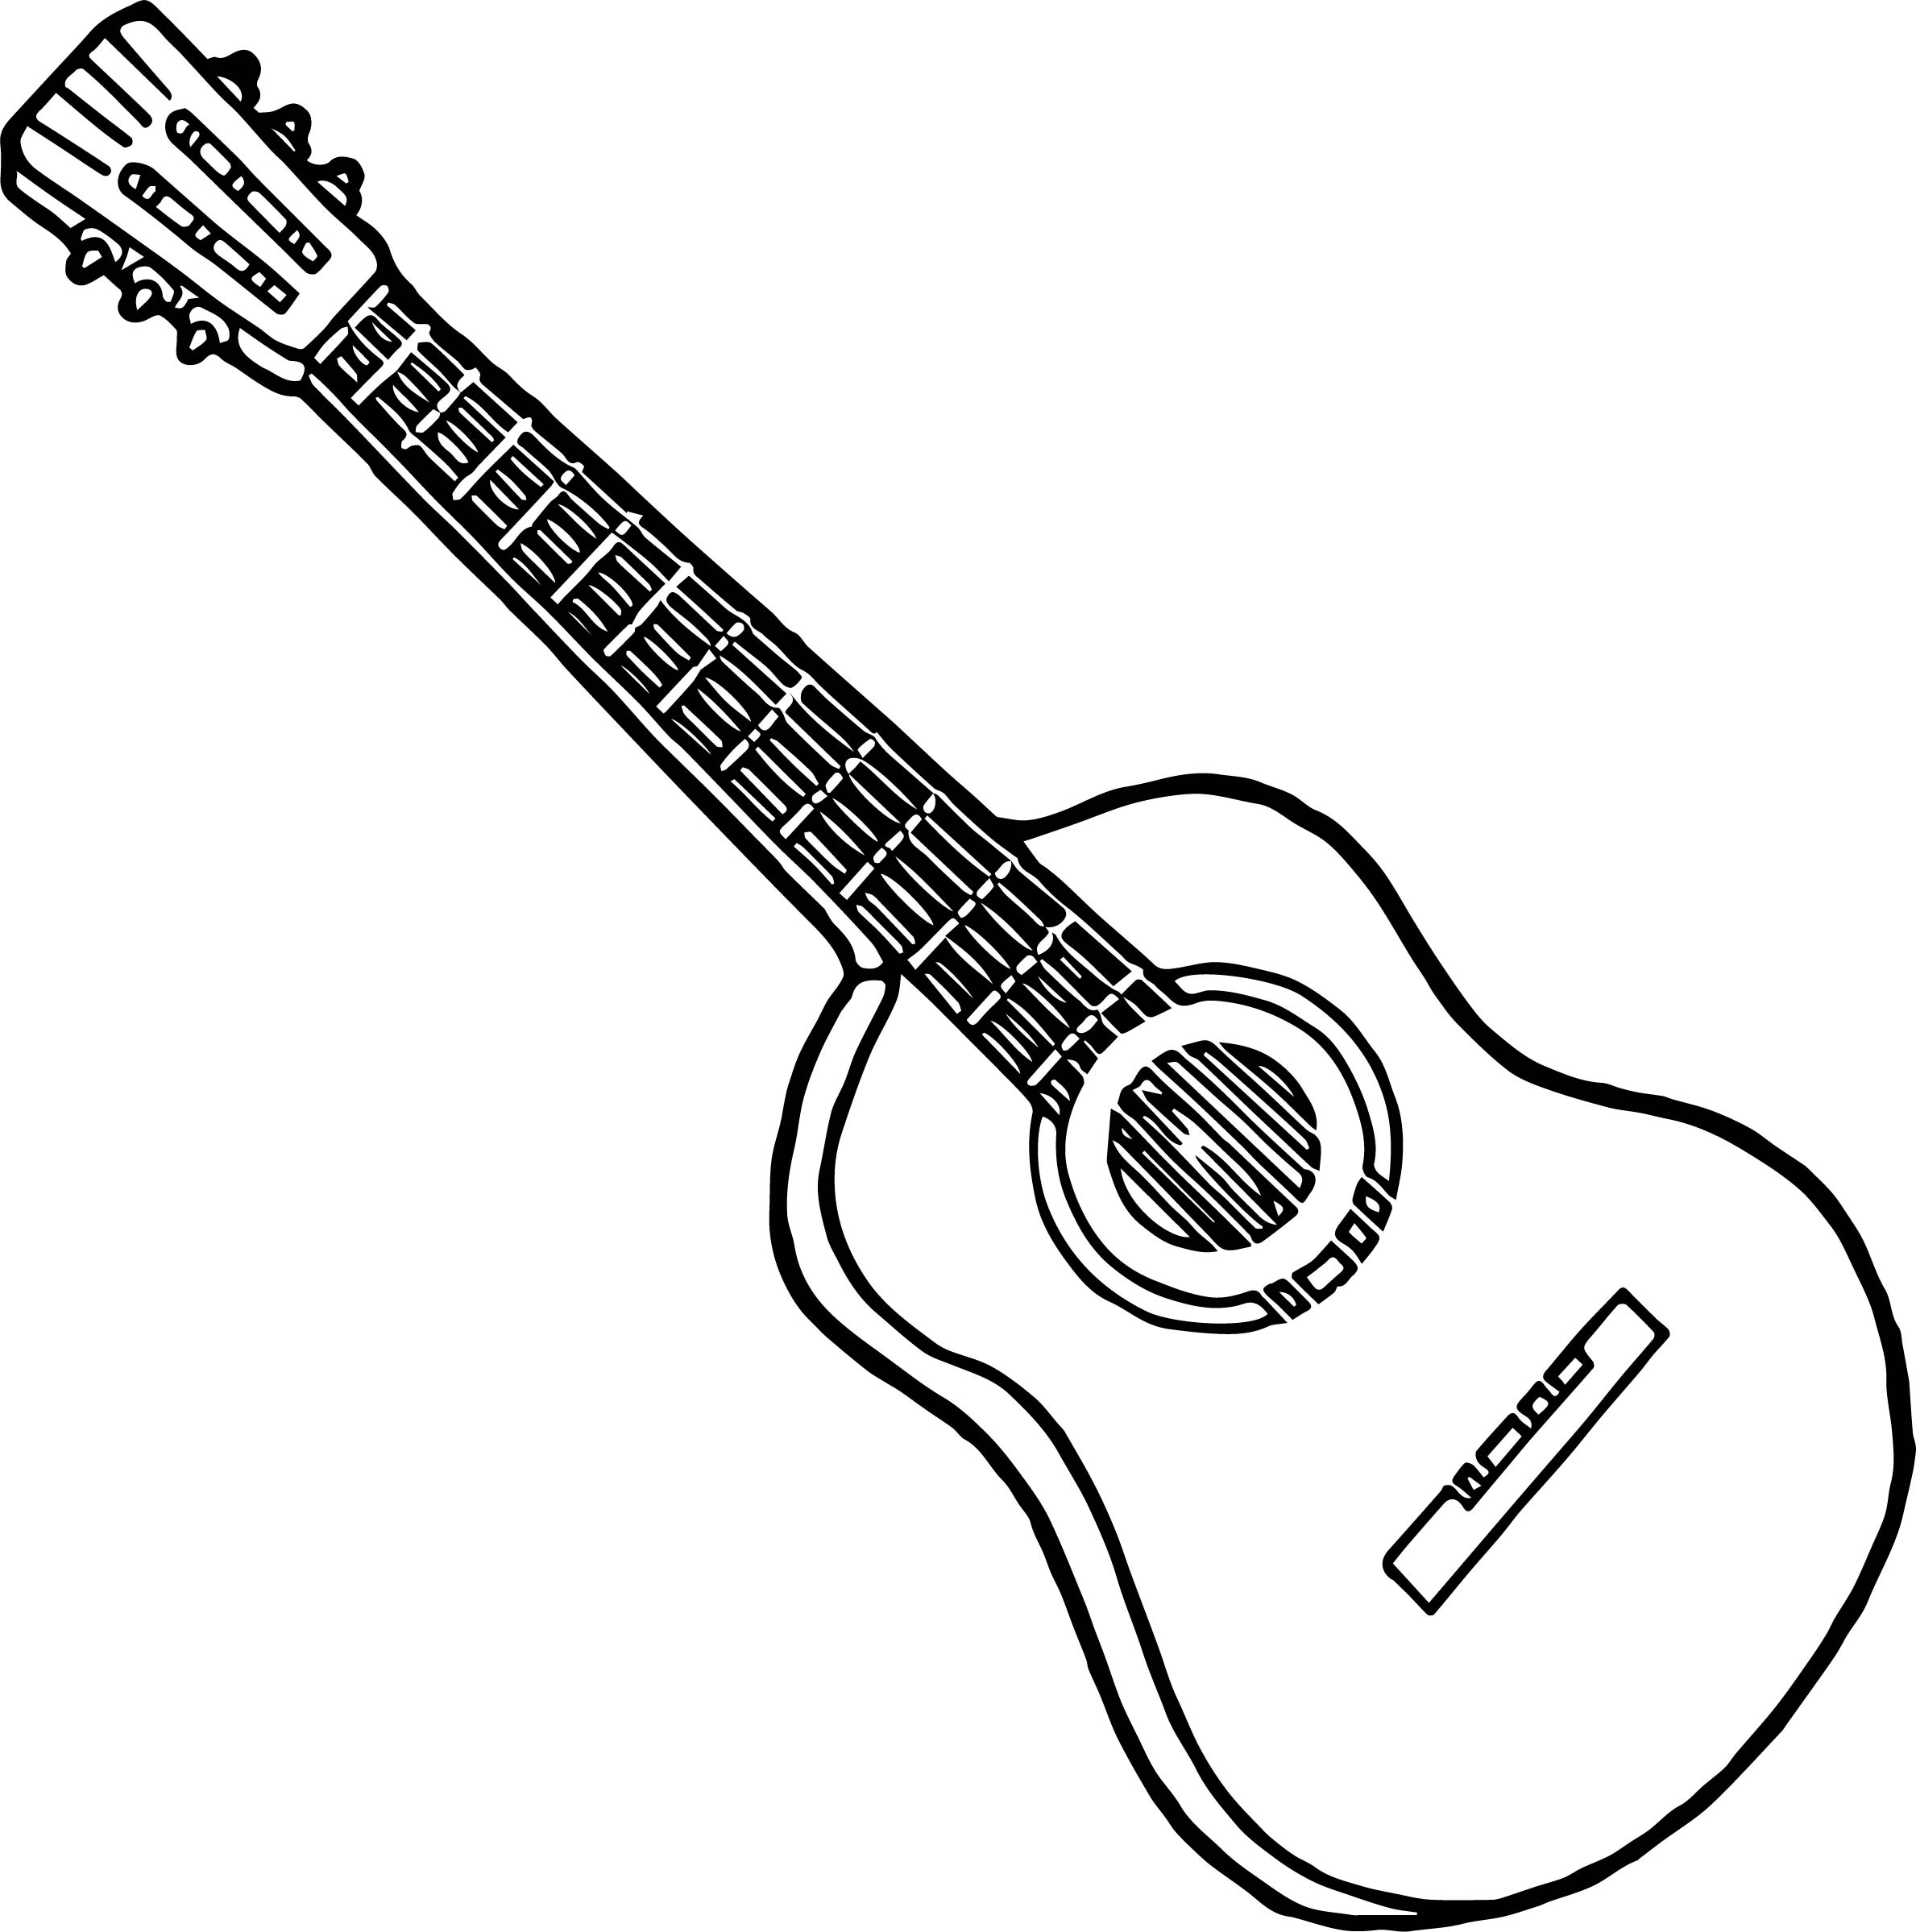 Strings Guitar Playing The Guitar Coloring Page Wecoloringpage